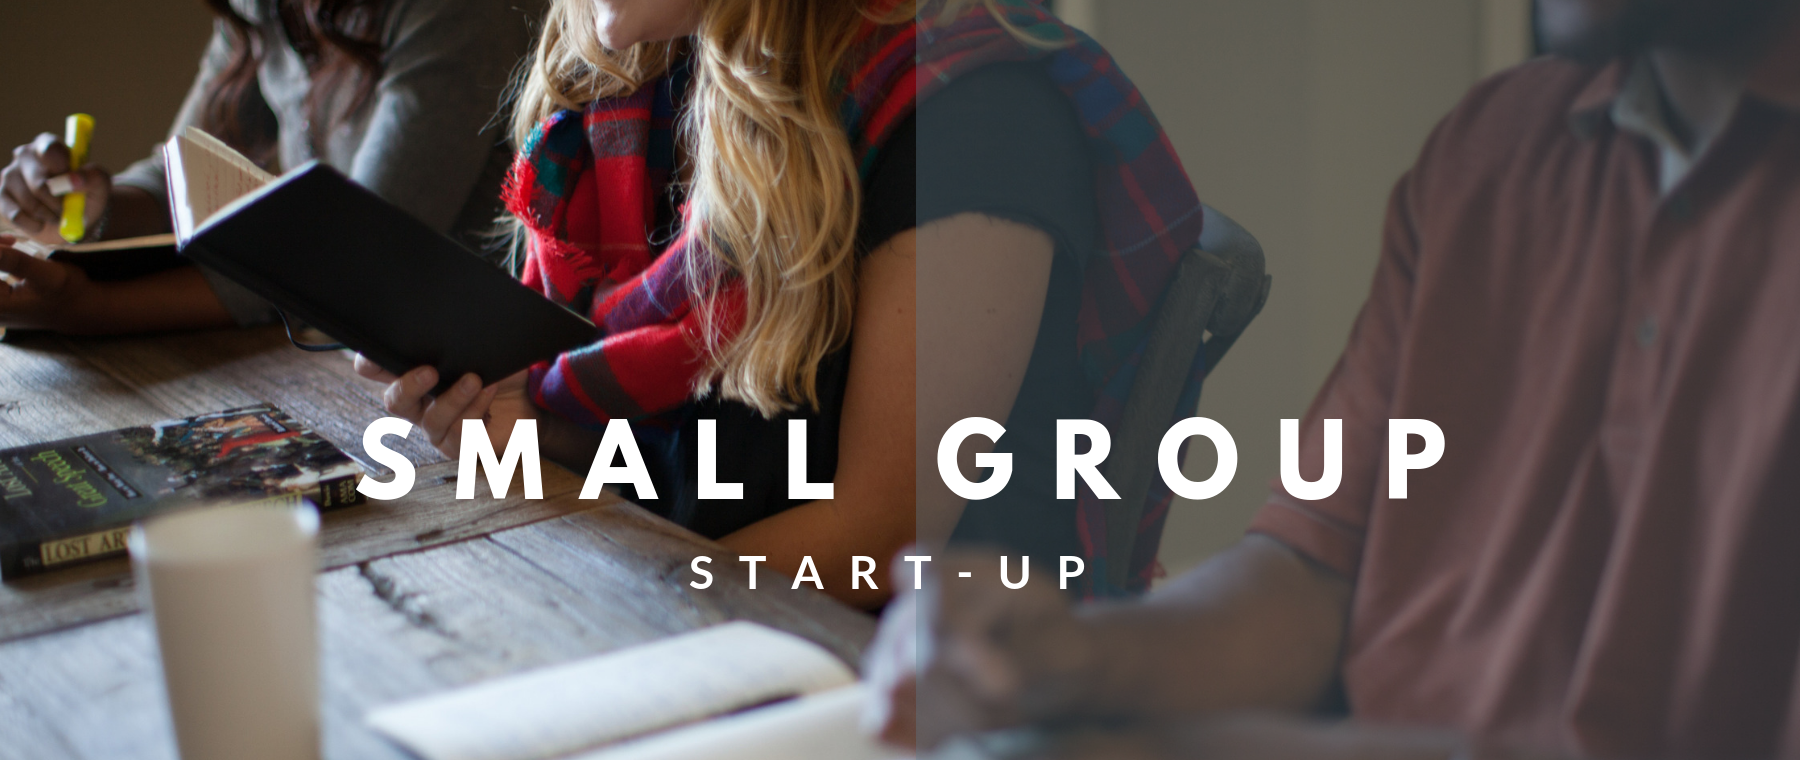 Small Group Start Up